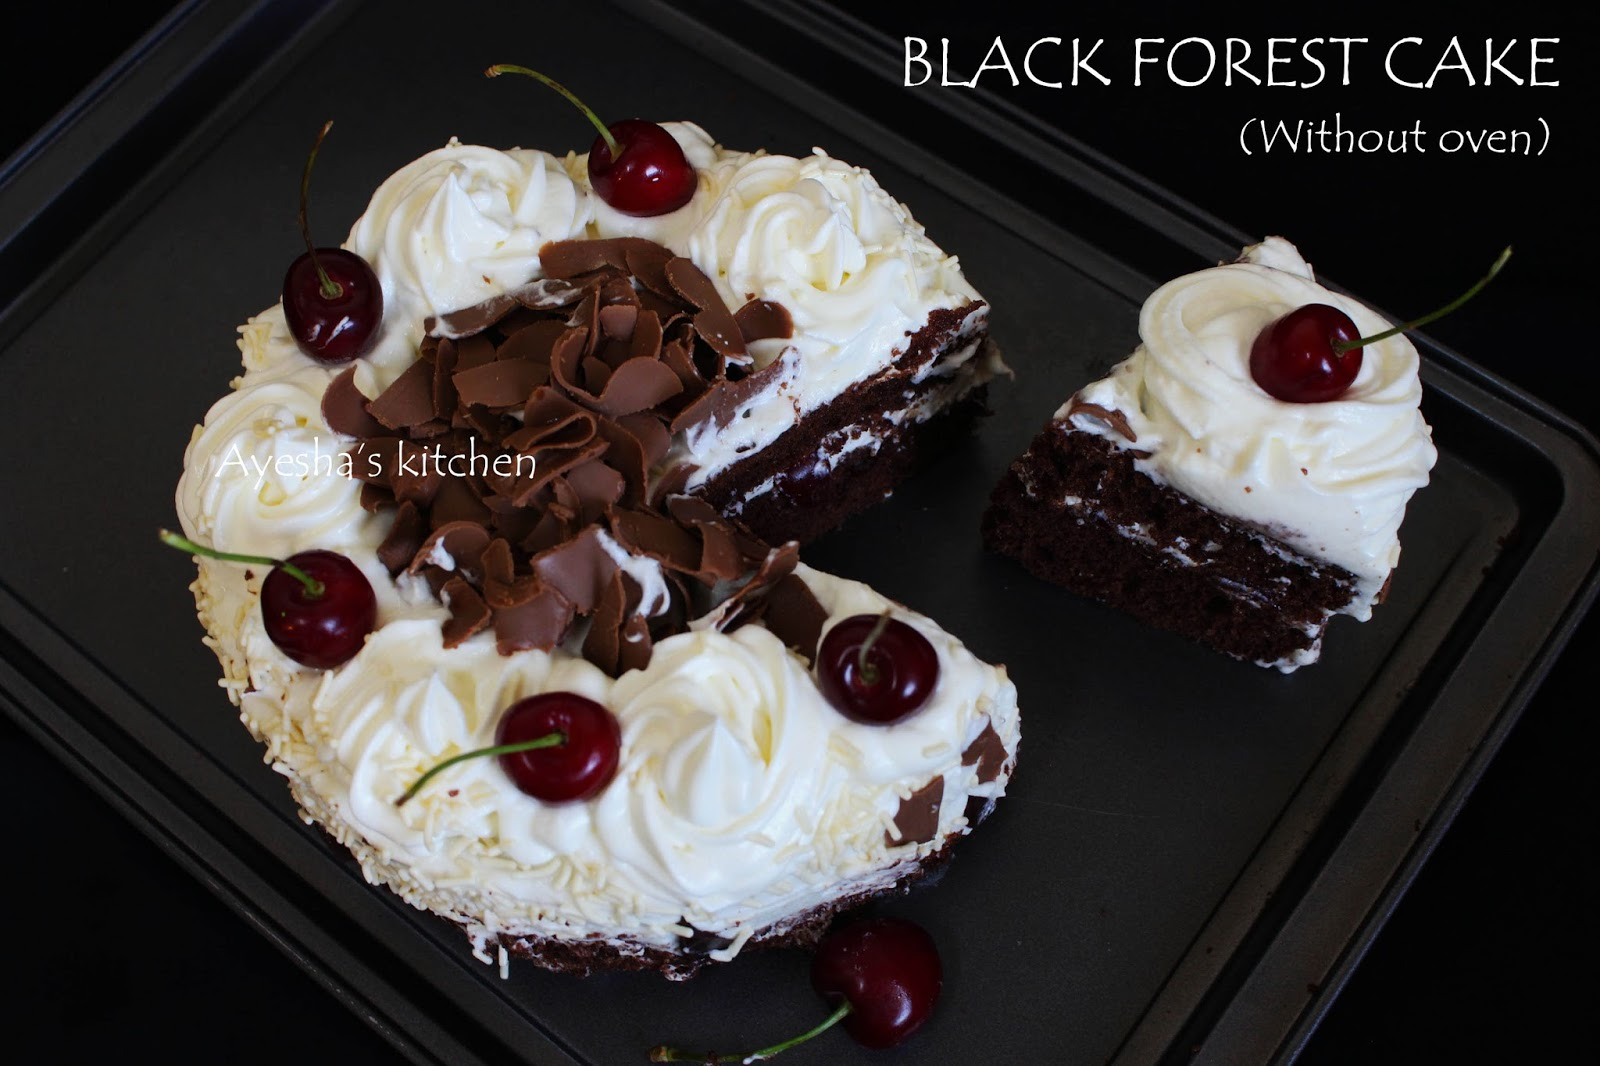 How to make black forest cake | Black forest cake recipe ...